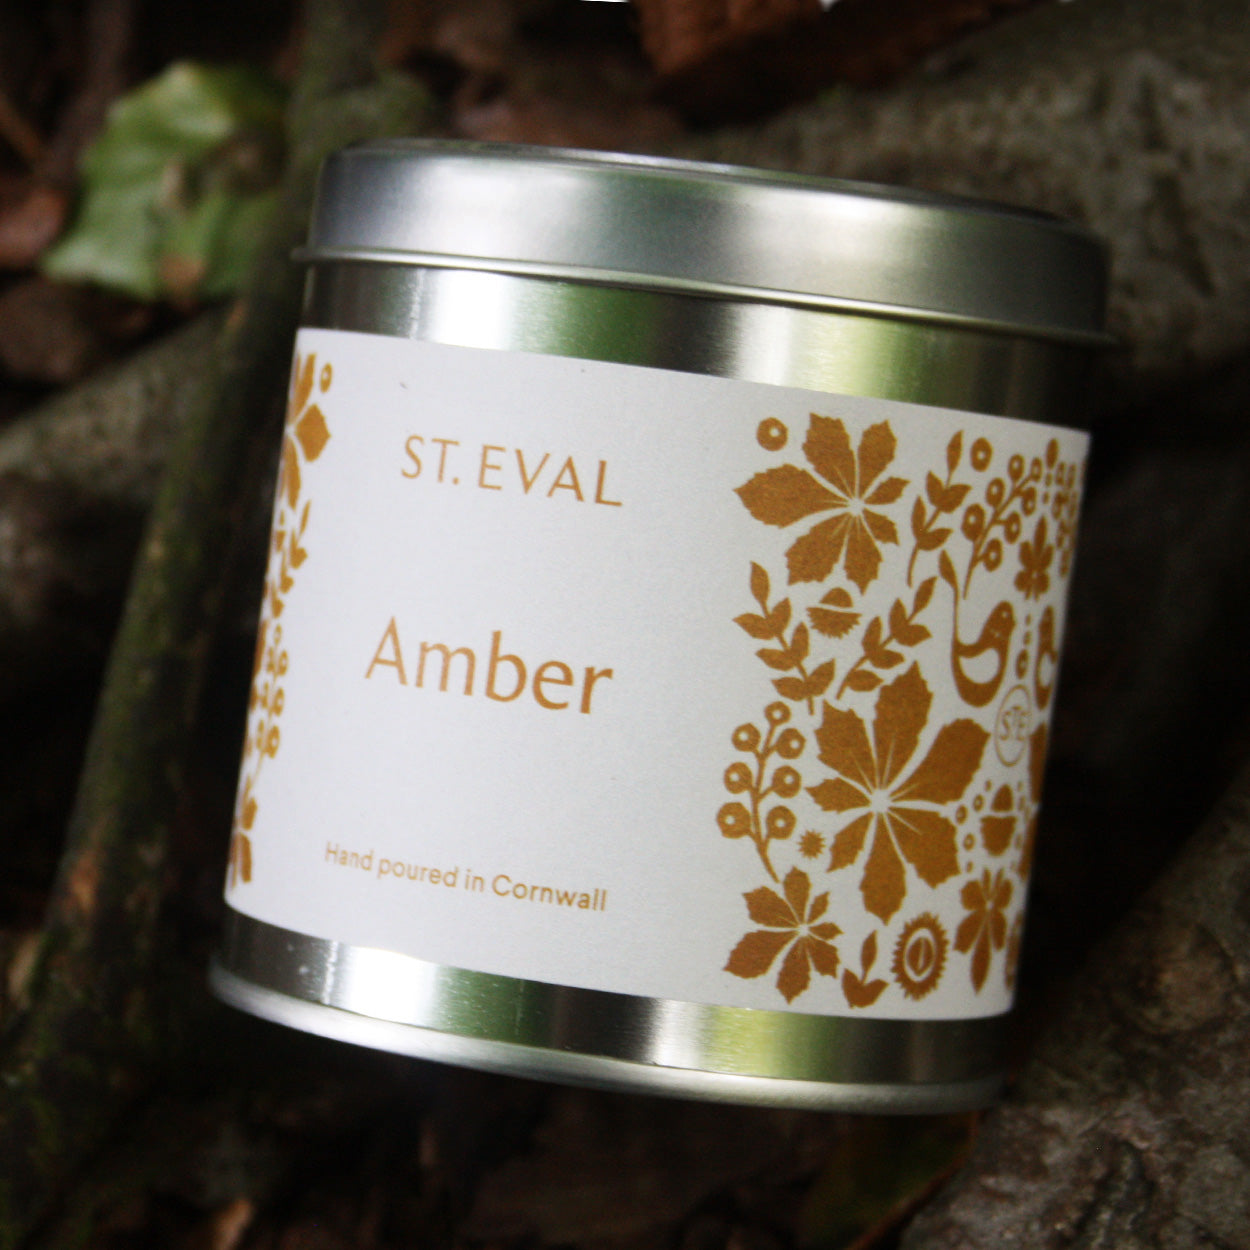 Part of the St. Eval Folk Collection, Amber is soft, warm and subtly honeyed with notes of almond and musk. A perfectly balanced sweeter candle - A sumptuous scent which conjures up Winter warmth, or perfect for cozy everyday relaxation.